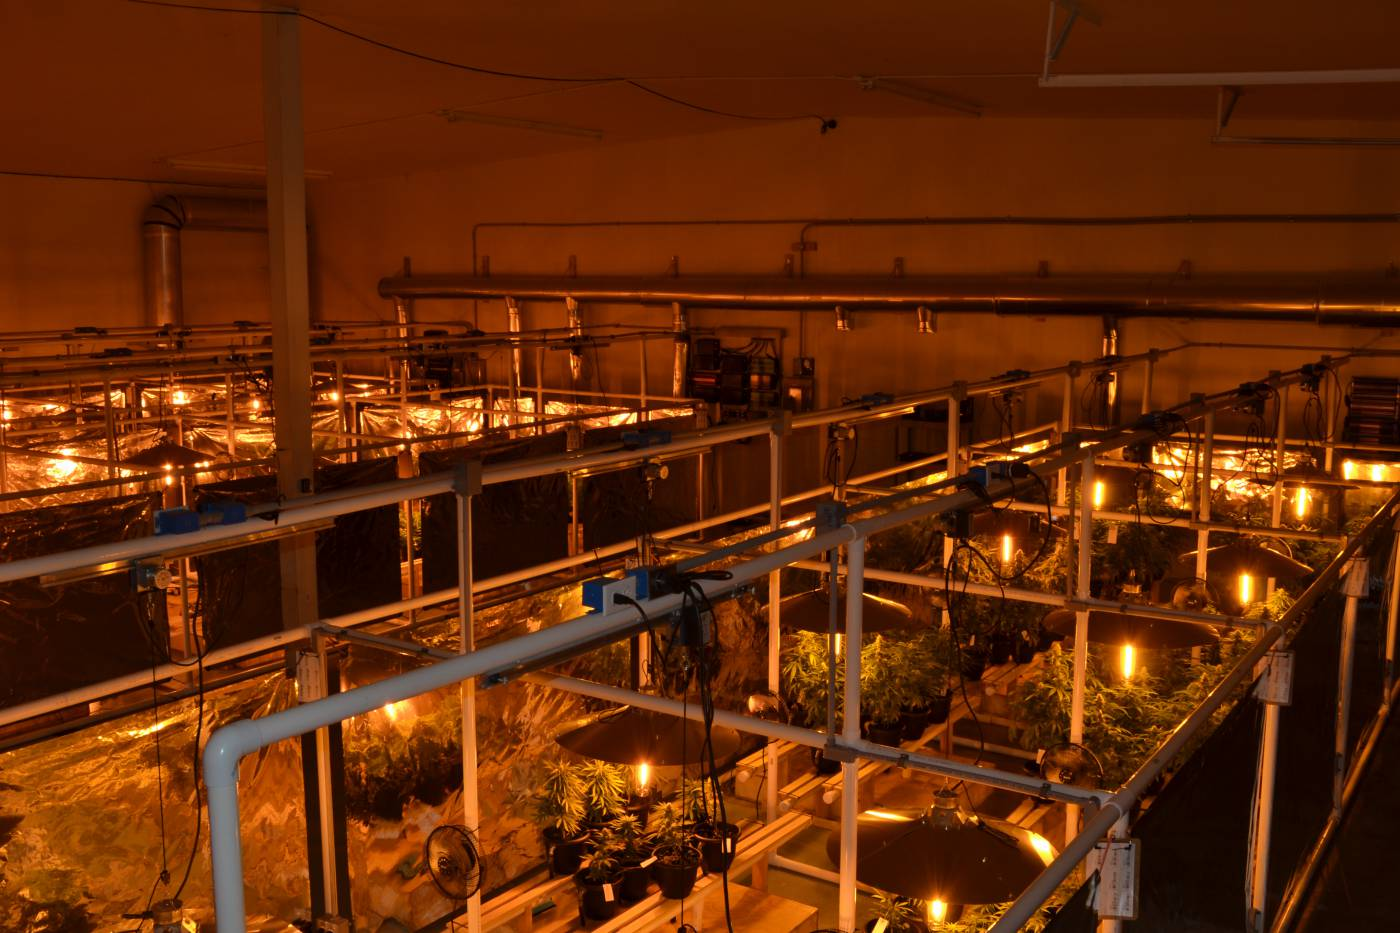 Light mover space planning allows 30% more indoor grow system space to be covered